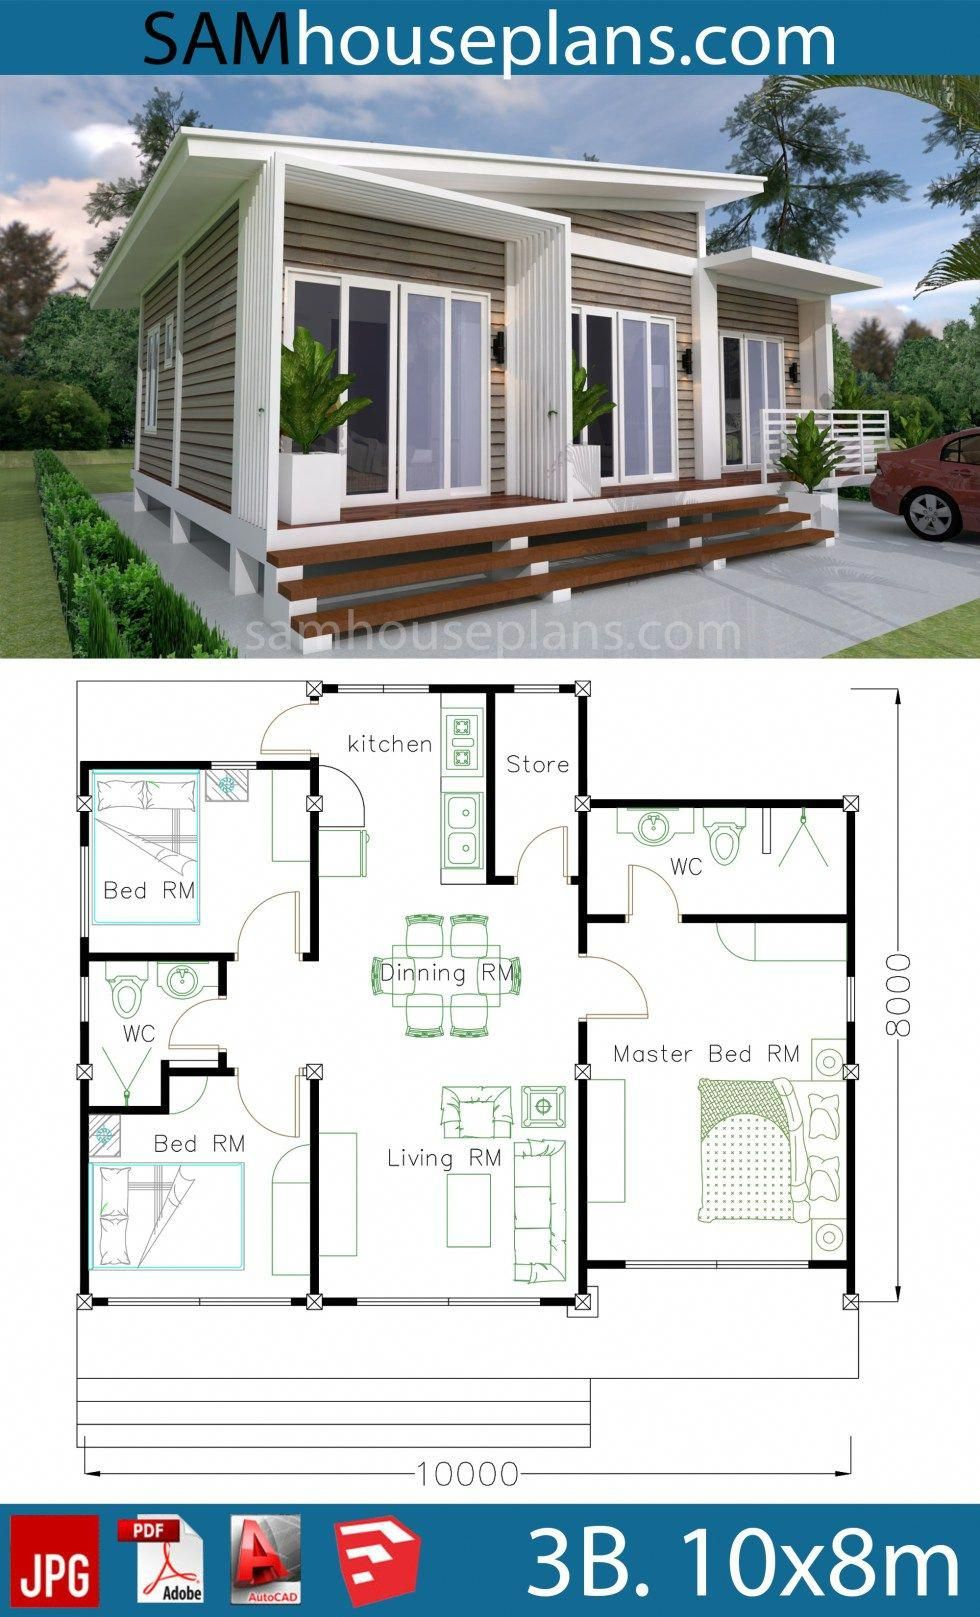 House Plans 10x8m With 3 Bedrooms Sam House Plans Simplebeachcottages Affordable House Plans Beach House Floor Plans Beach House Flooring